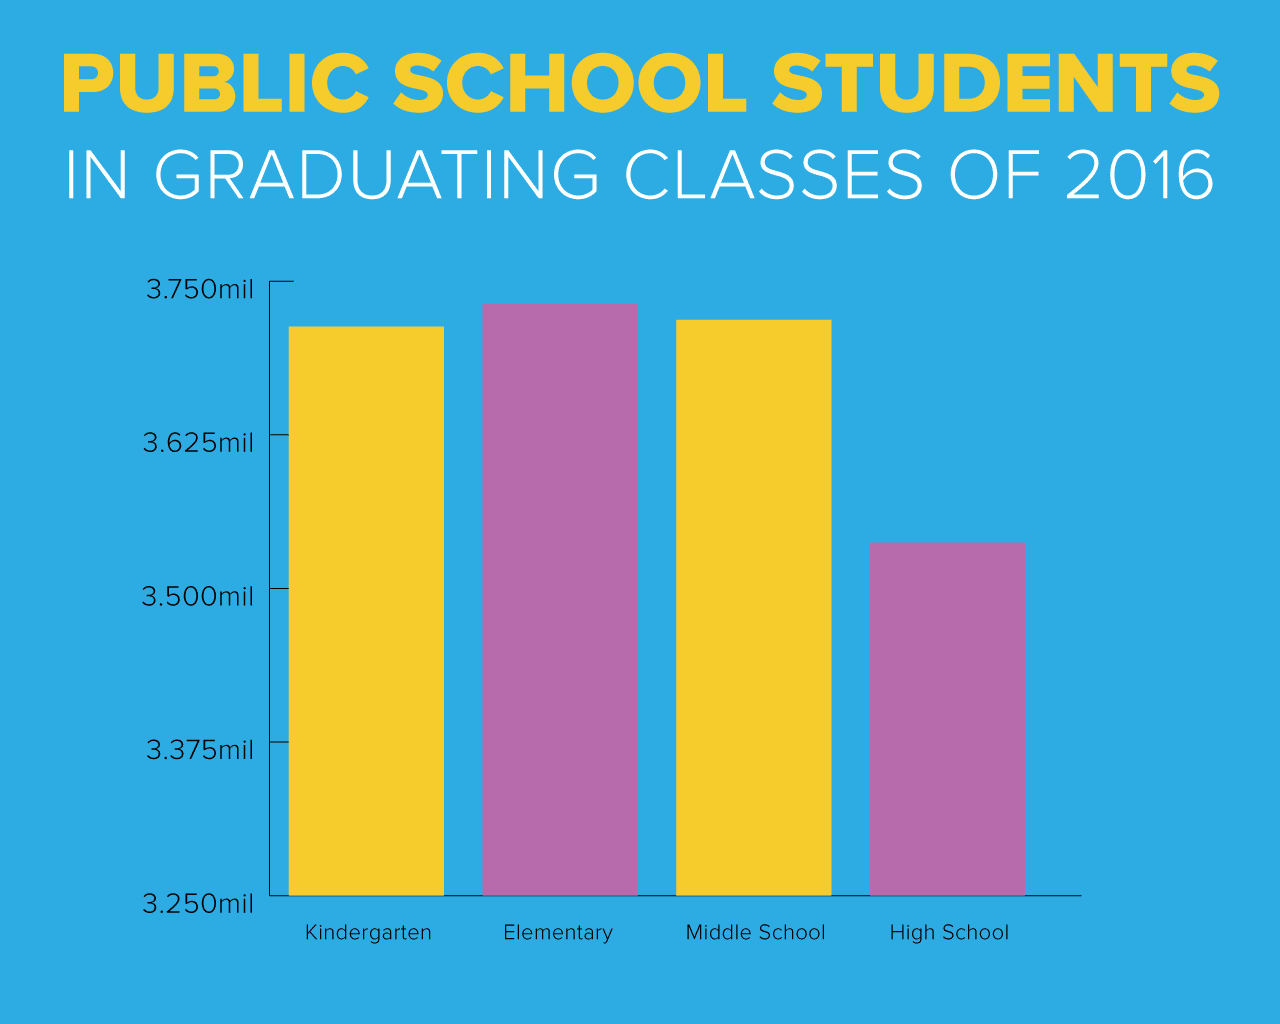 There are significantly more students enrolled in kindergarten, elementary, and middle school than high school as of 2016.